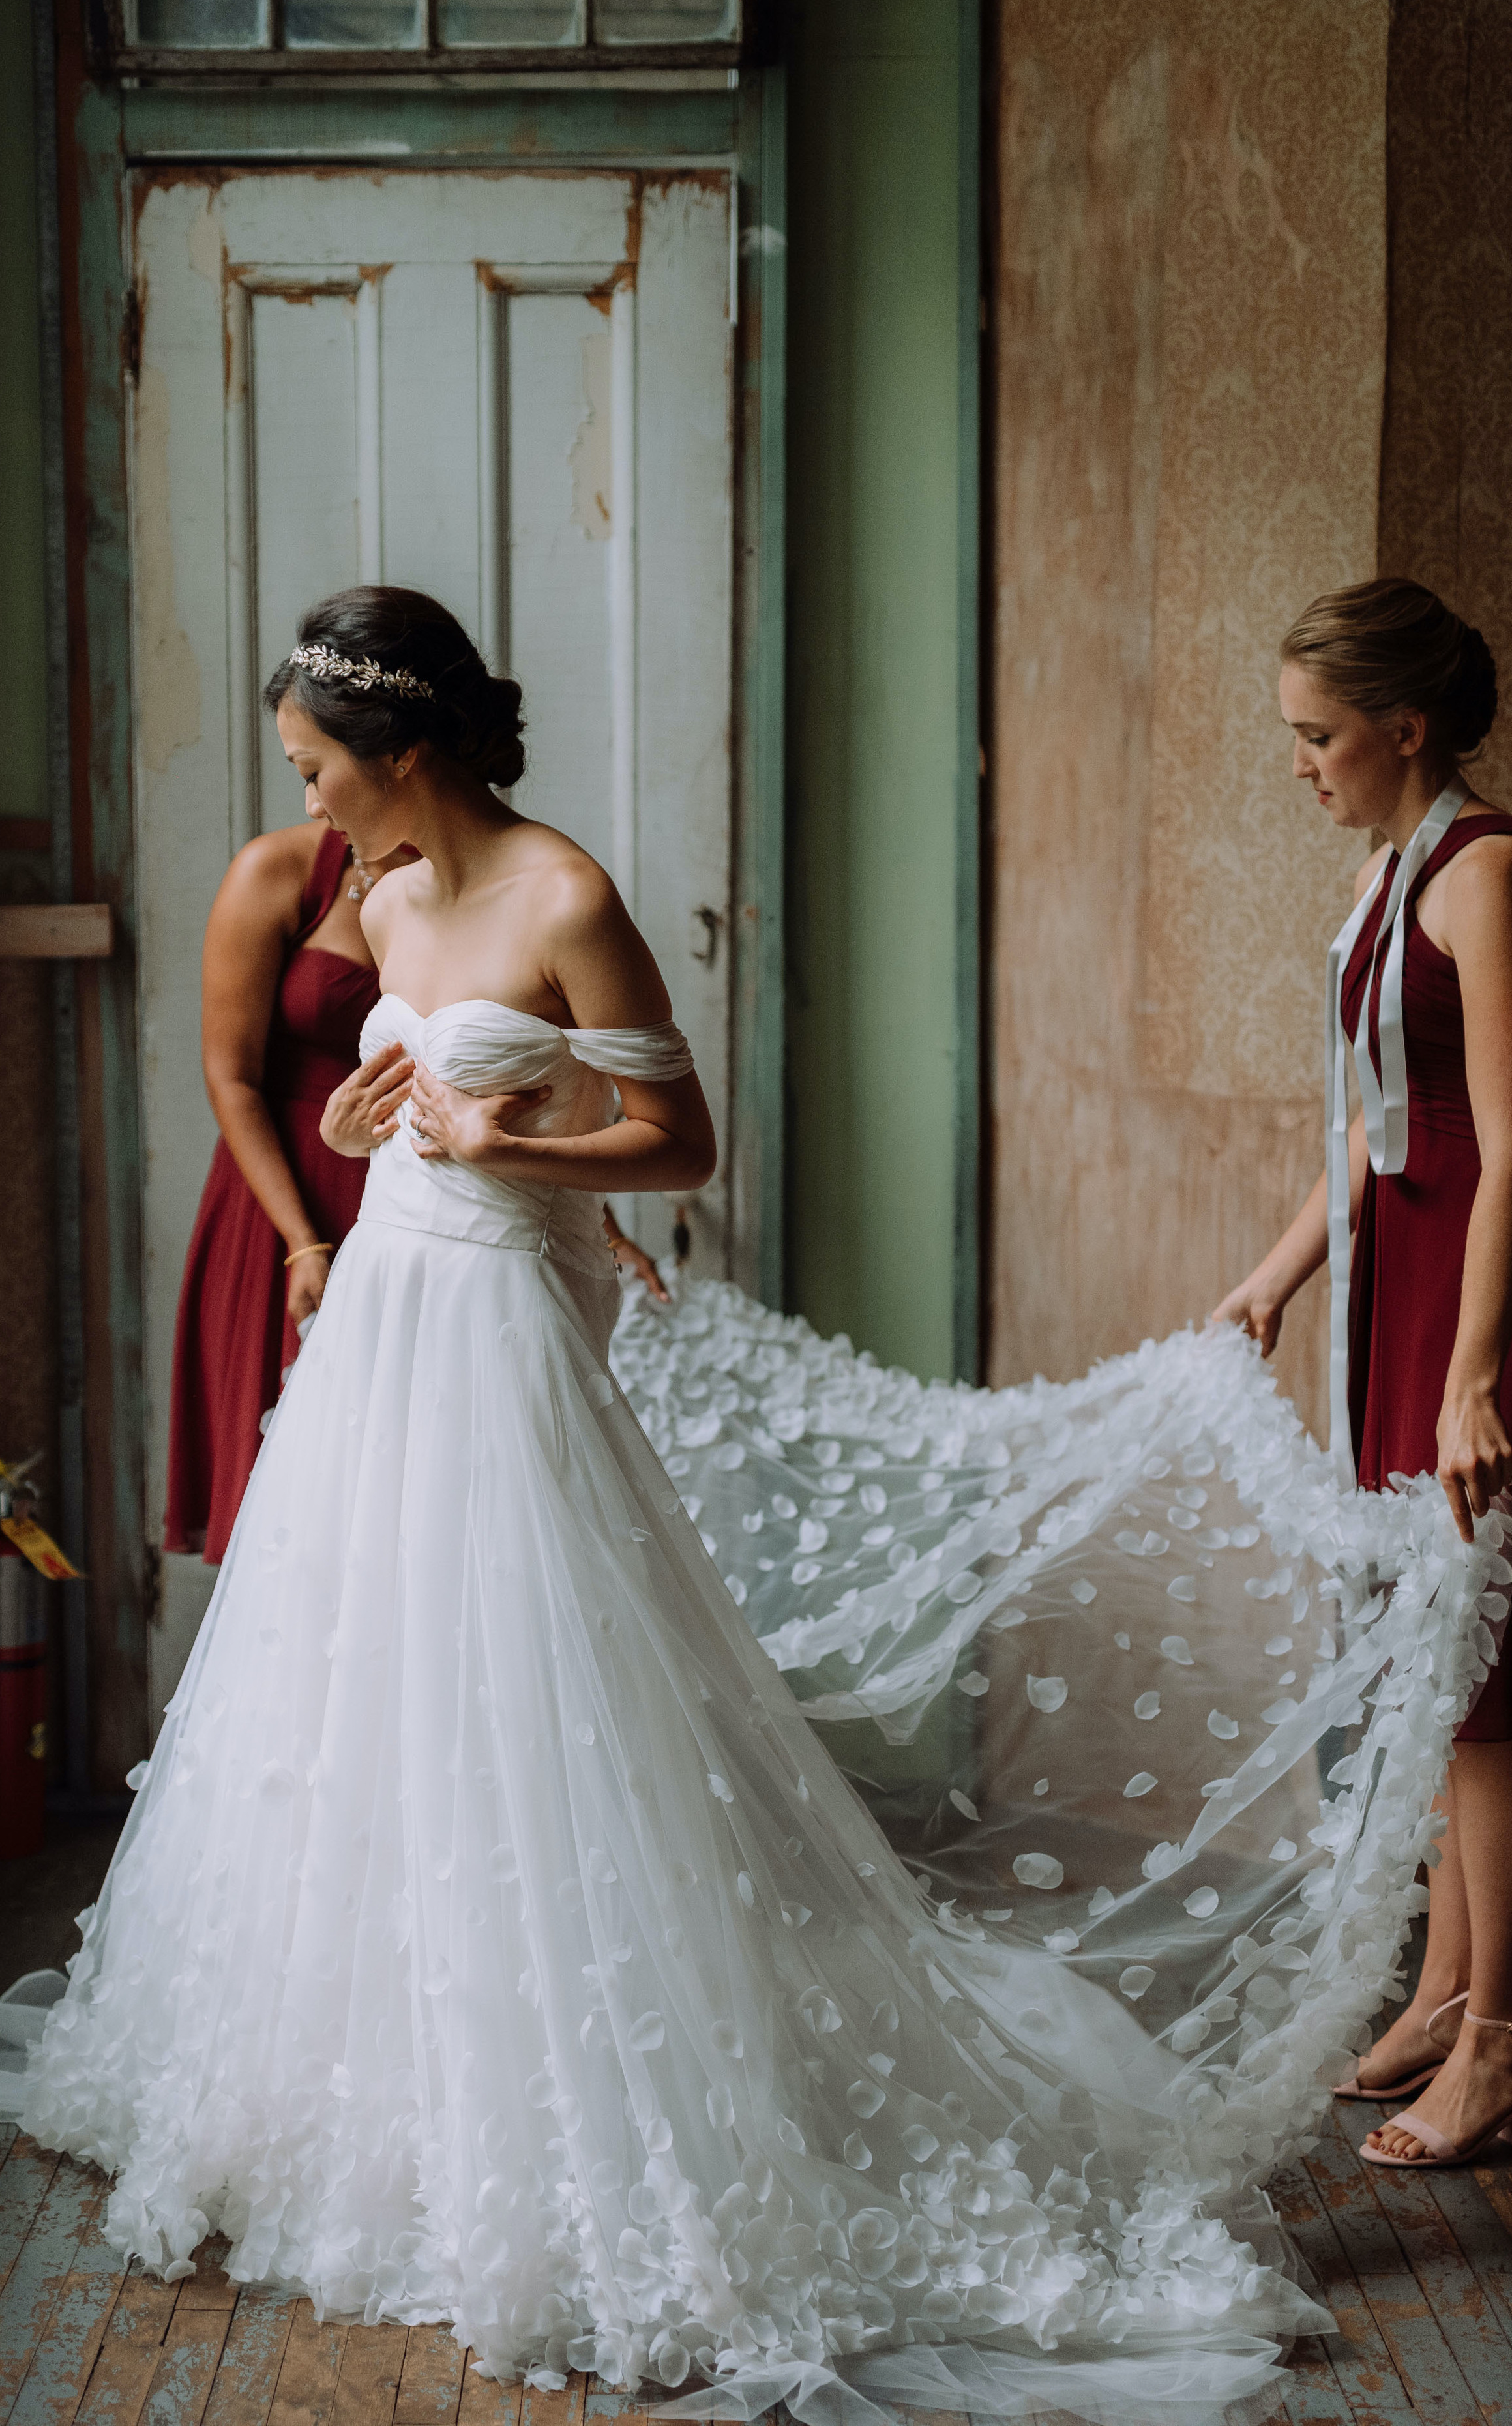 Bride customized her wedding dress with Anomalie Online Wedding Dresses with off-the-shoulder sleeves and 3D floral lace.